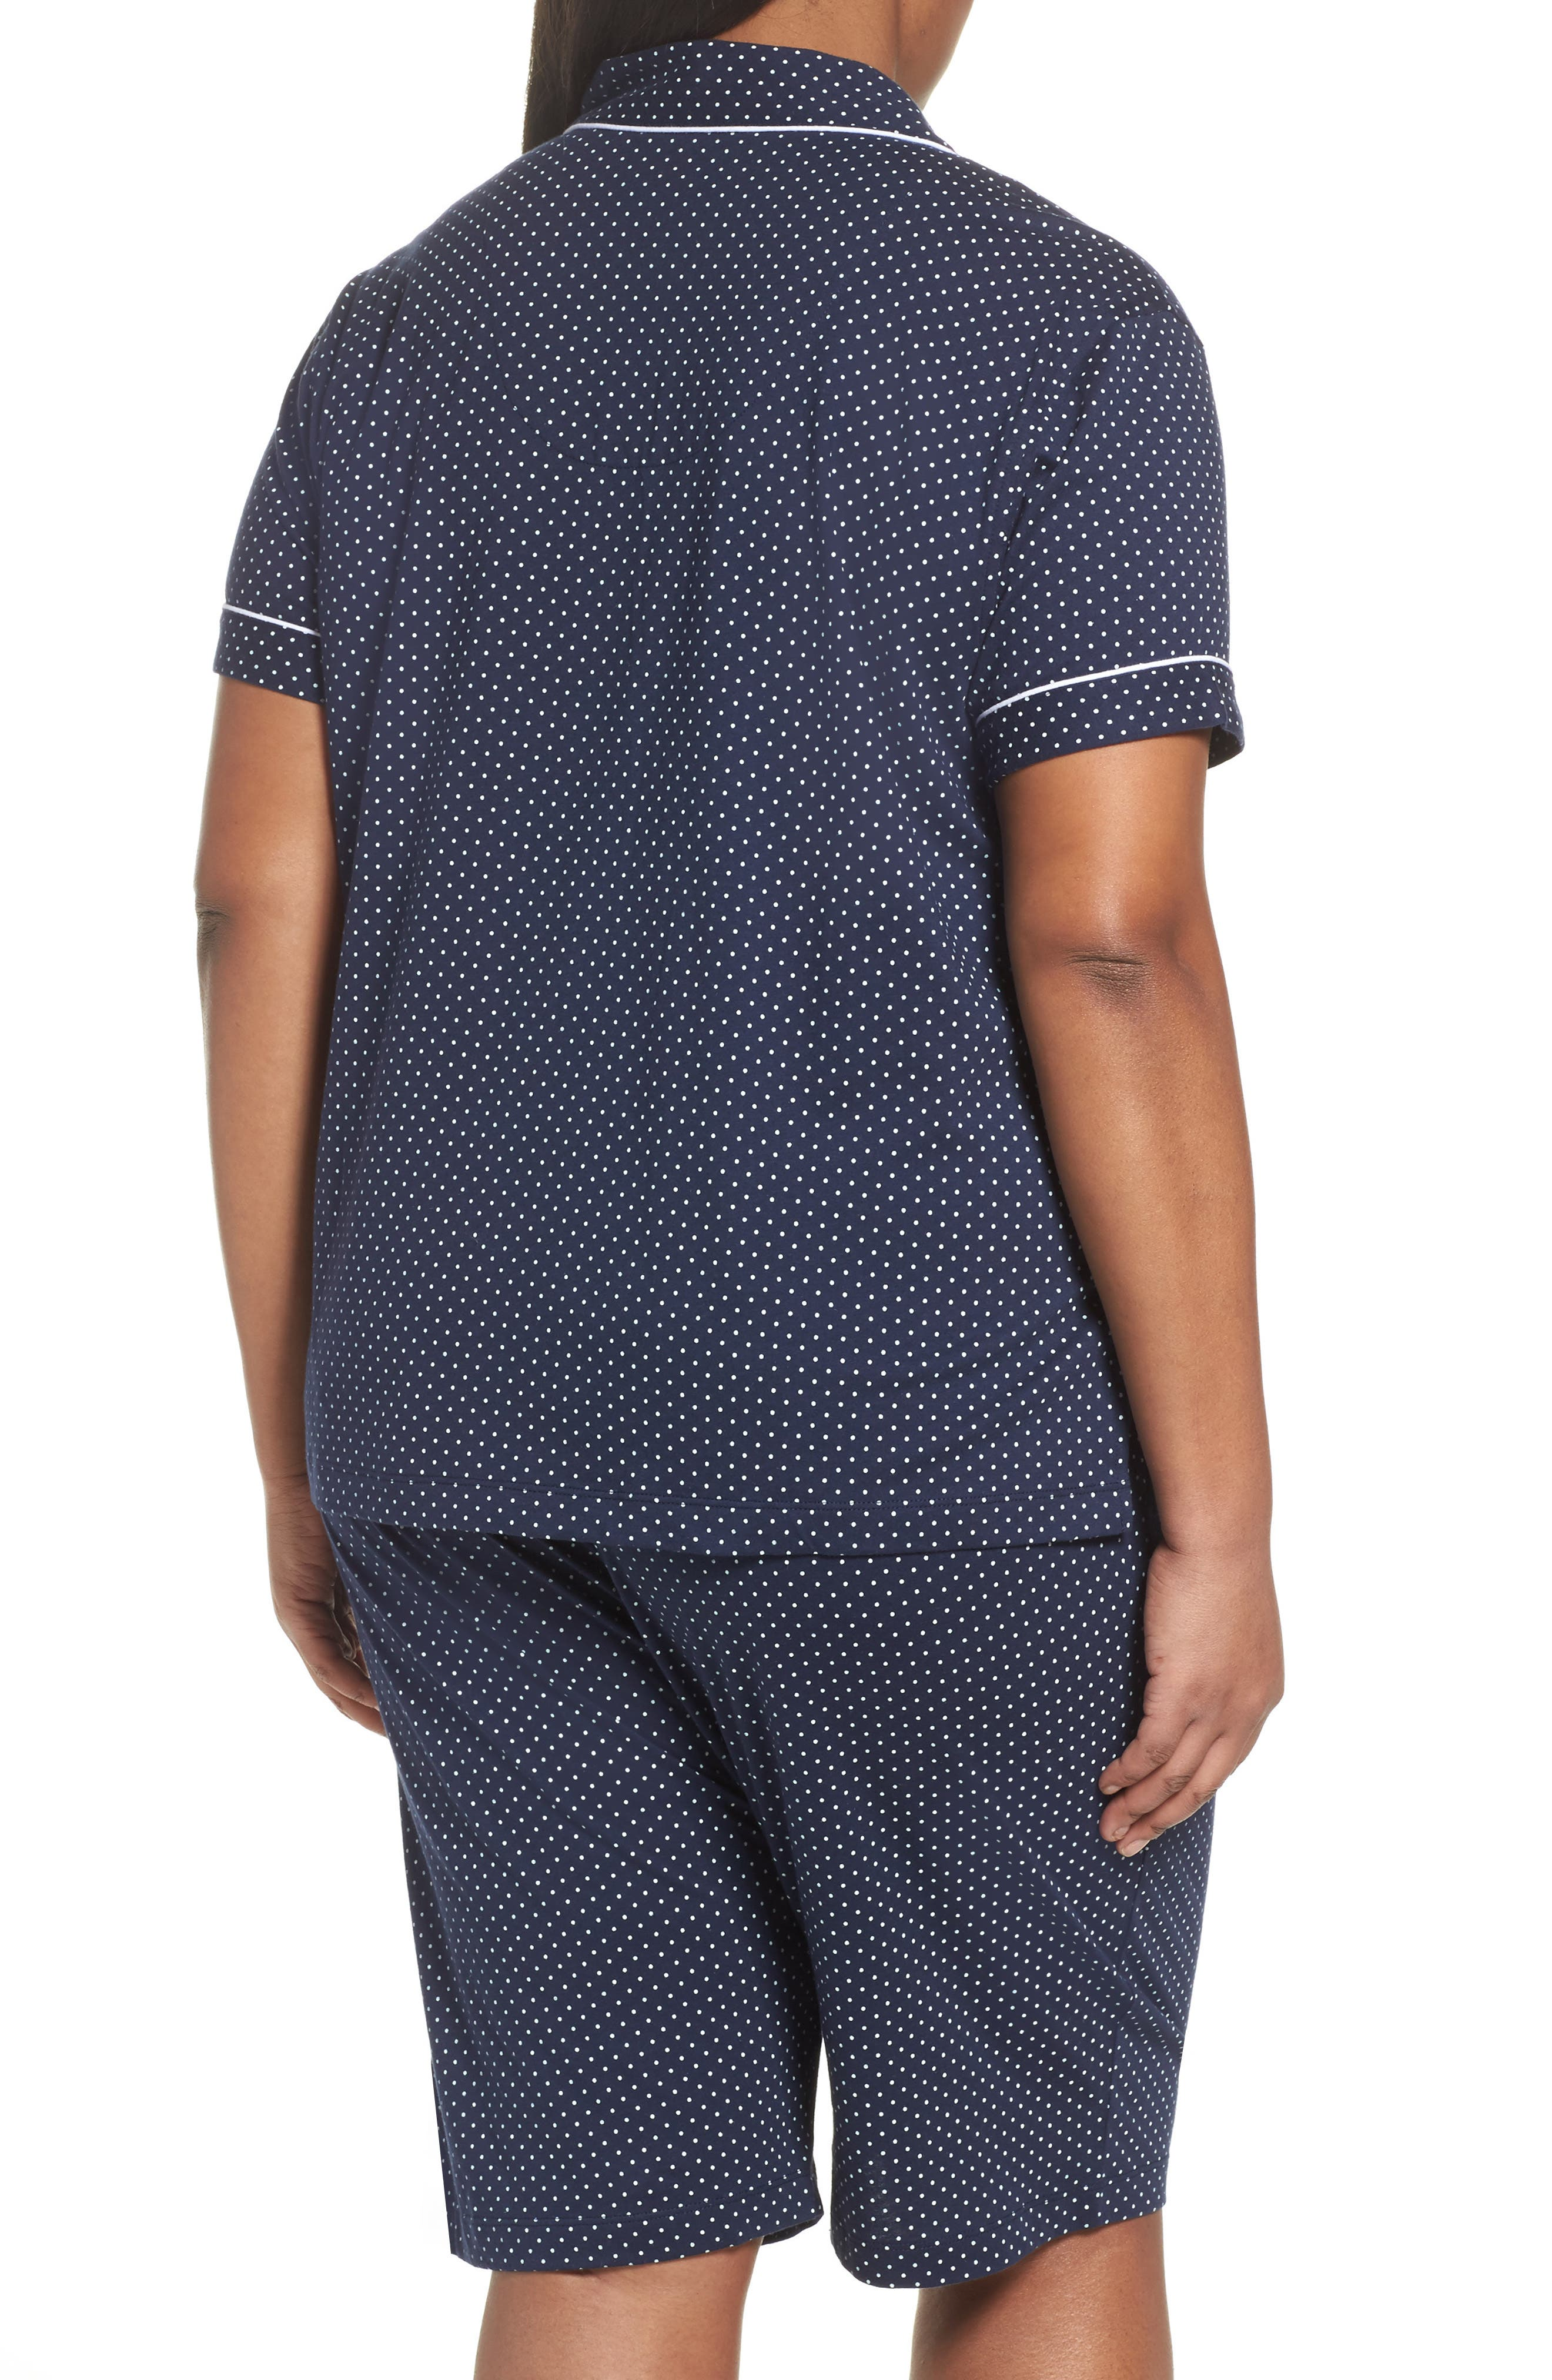 LAUREN RALPH LAUREN,                             Bermuda Pajamas,                             Alternate thumbnail 2, color,                             NAVY DOT